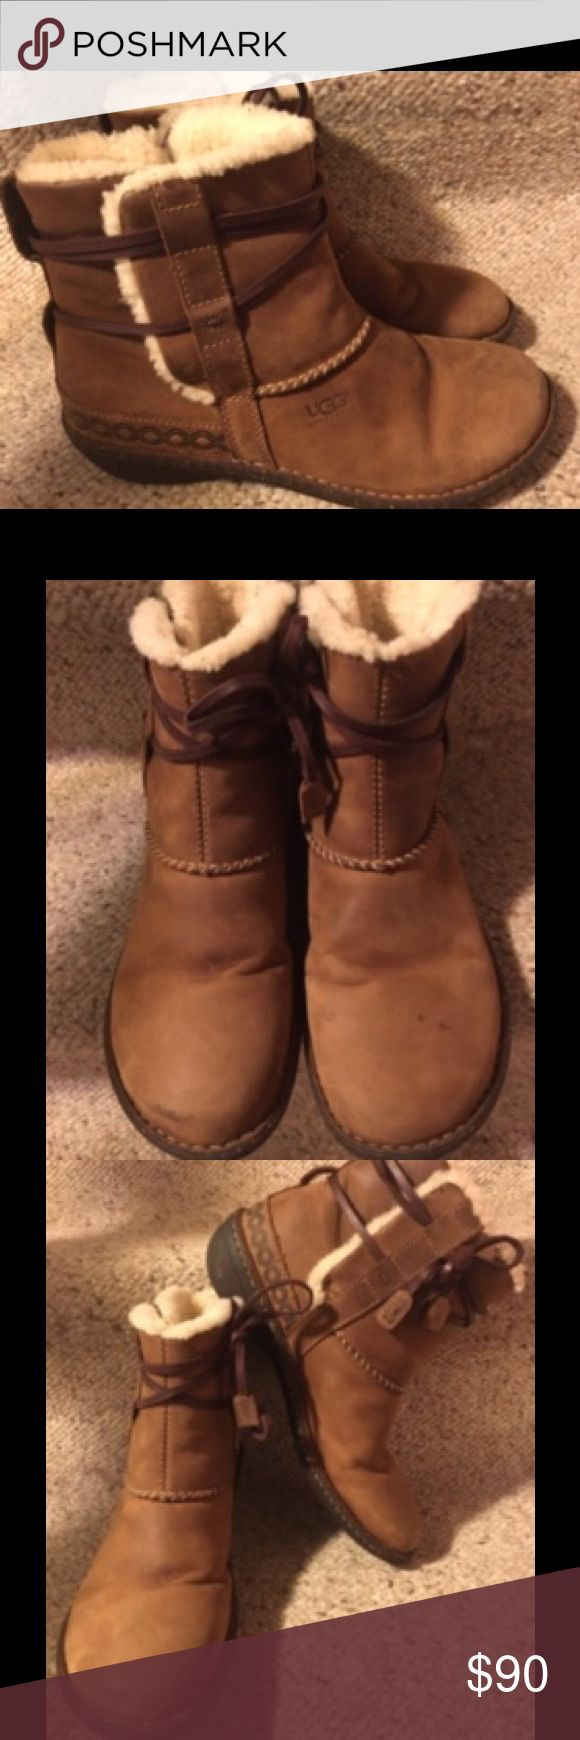 UGG Tan Leather Boots Rare tan leather waterproof boots with leather straps that goes around the ankles, wool lining with sturdy rubber soles. Size 10. I wore them a couple time to try to break them in since they were a little too small for me but a size 11 was not available. Small spots on the left front. UGG Shoes Ankle Boots & Booties